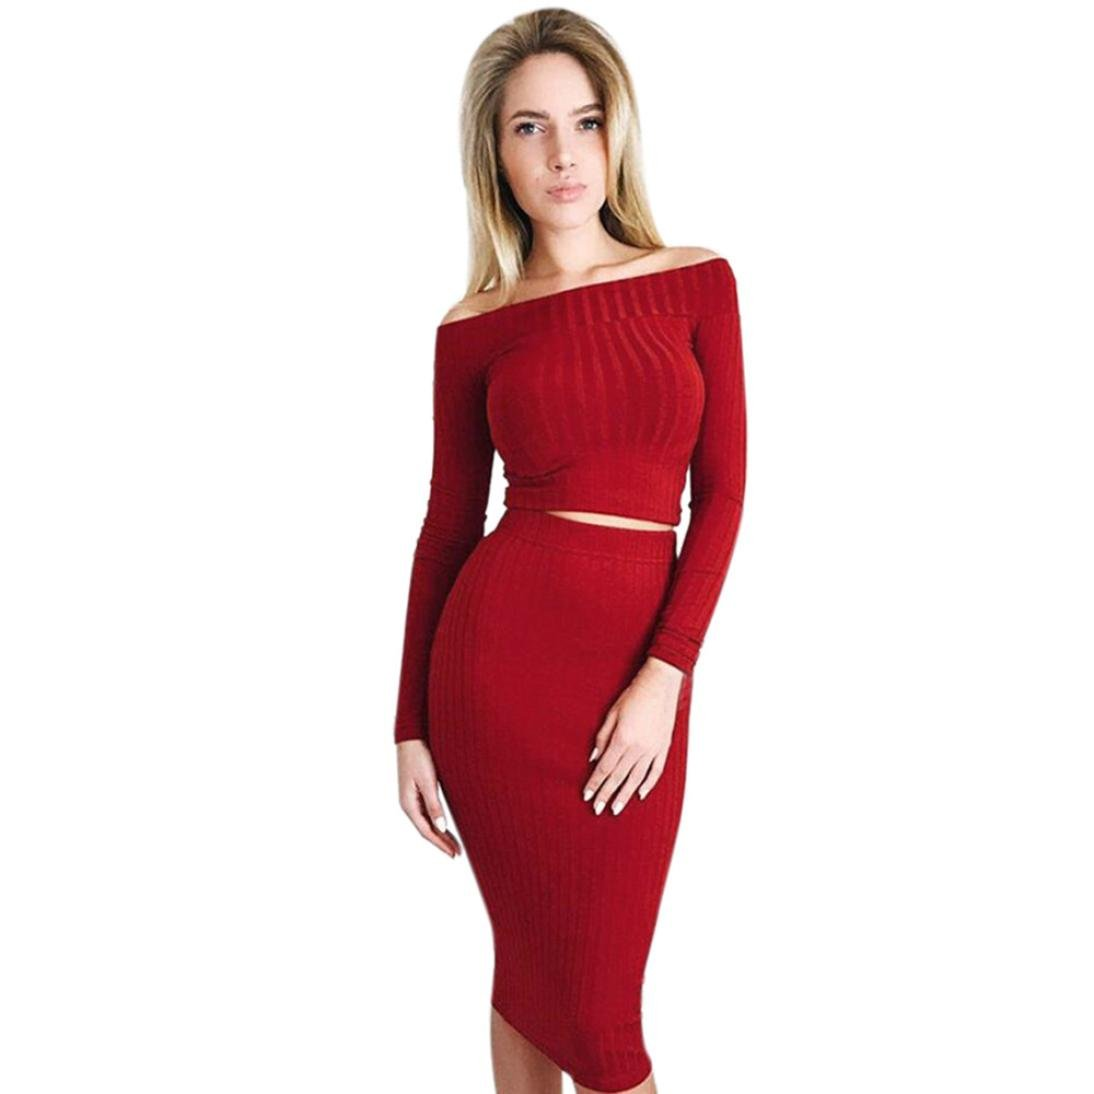 Sunward Womens Long Sleeve Off Shoulder Crop Top Midi Skirt Outfit Two Piece Bodycon Dress 5356